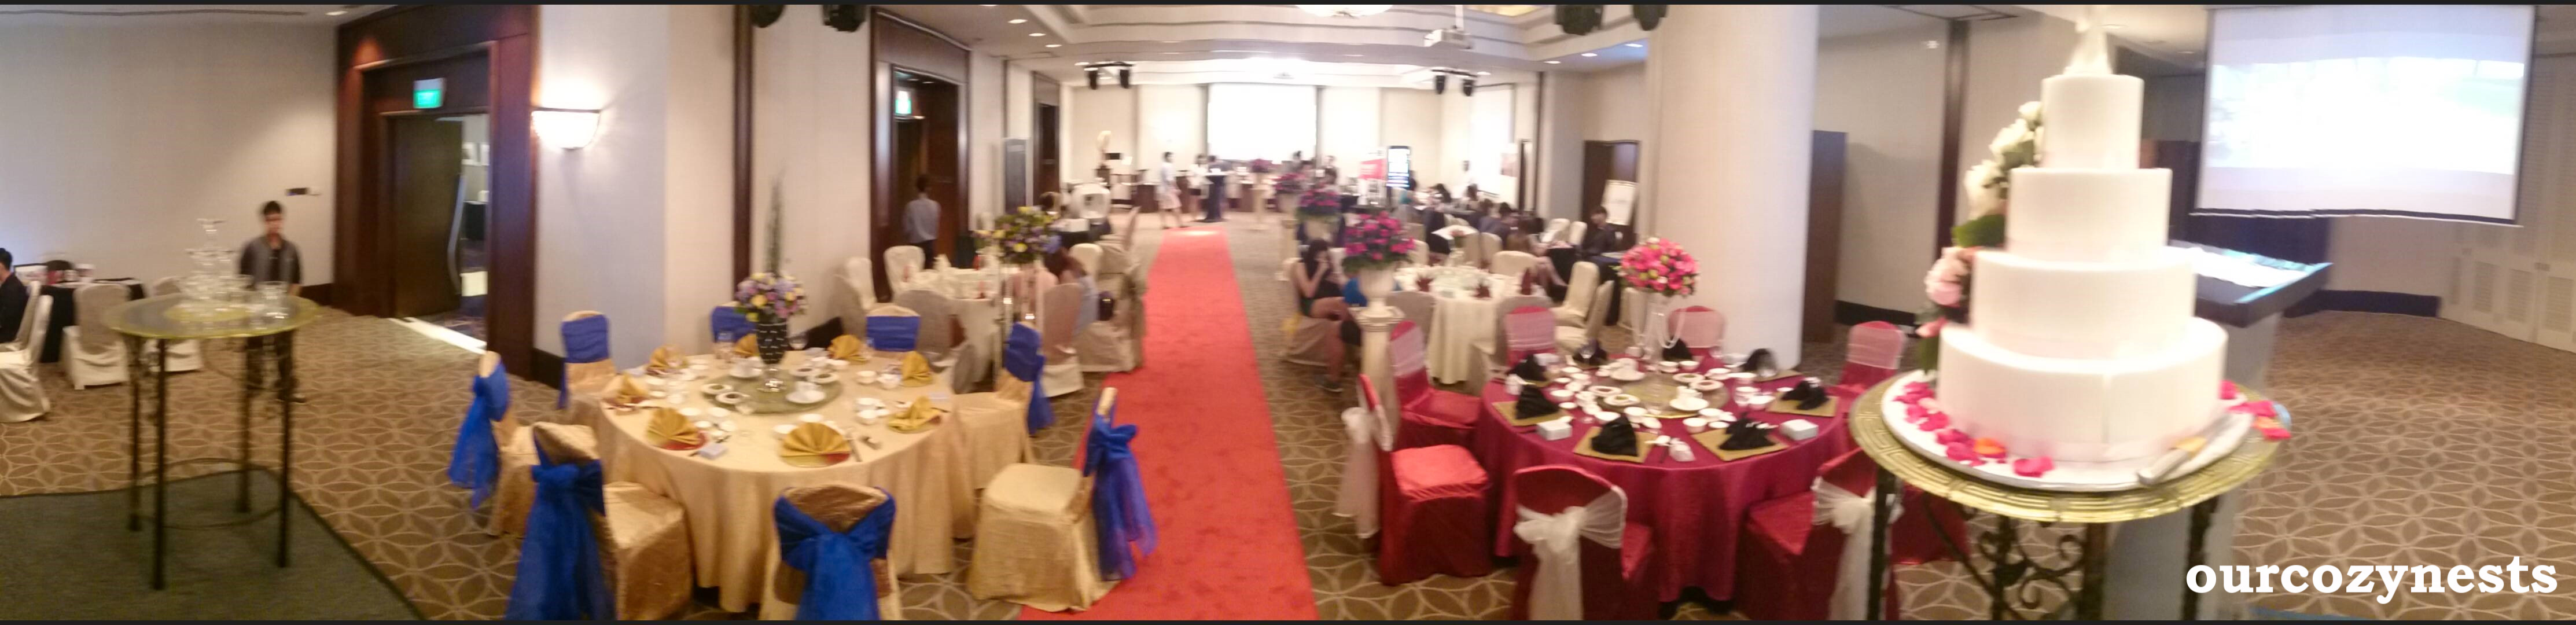 Rendezvous Hotel Wedding Banquet Review  Ourcozynests. Planning Your Wedding For Dummies. What Questions To Ask A Wedding Dj. Wedding Dress Boutiques Birmingham. Online Wedding Shopping Sites In India. Wedding Centerpieces With Pearls. My Wedding Flower Ideas. Wedding Quotes Movies. Wedding Florist Cheap